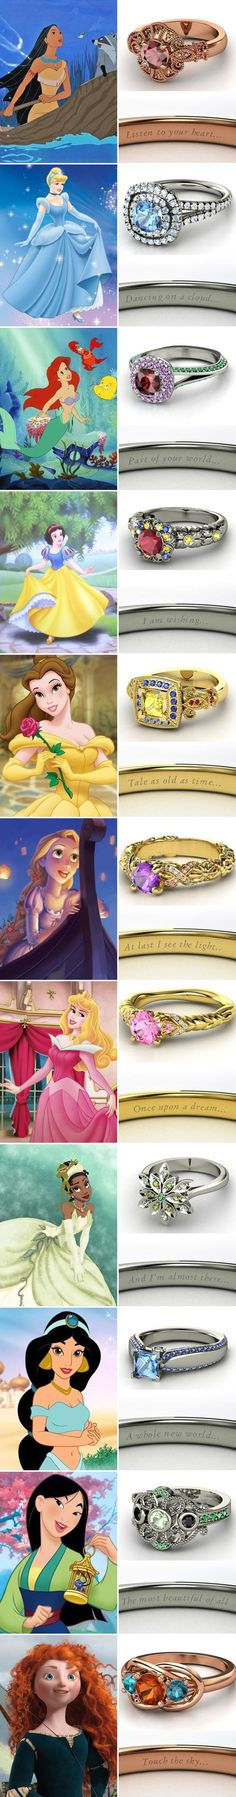 Disney princess wedd